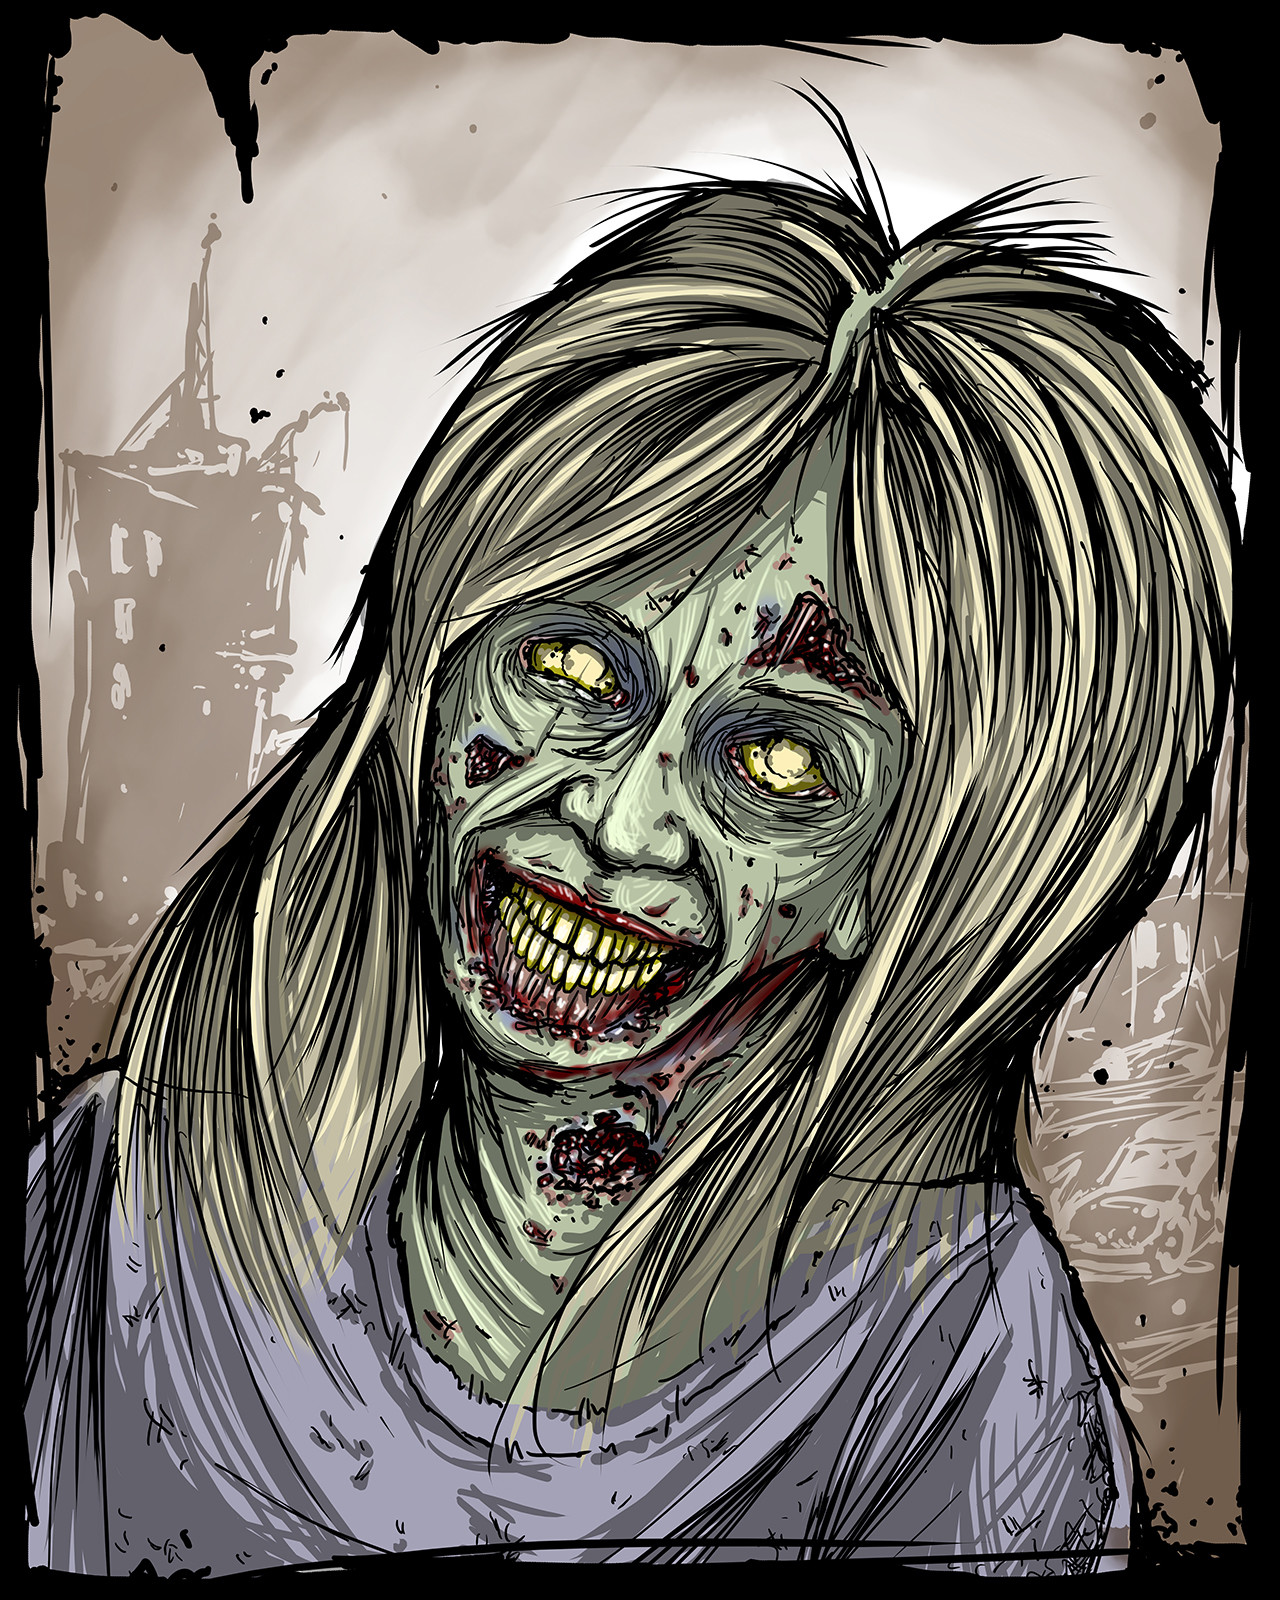 Mike johnston ruinedworld zombieportrait linneaquigley